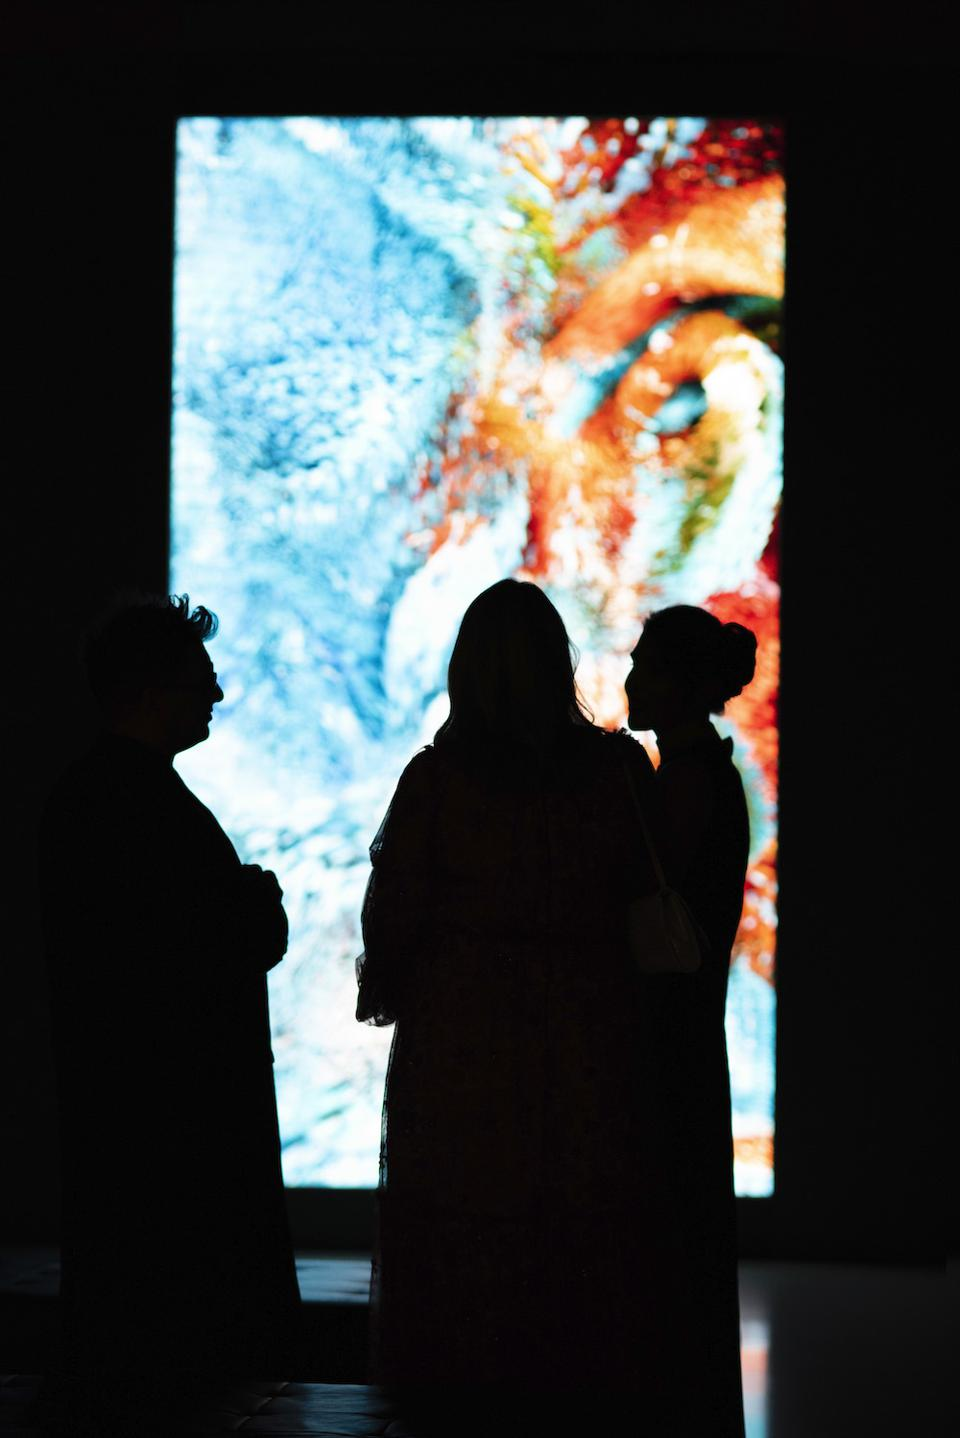 Refik Anadol's new work for the Rolls-Royce Art Programme previews at Dine on the Line